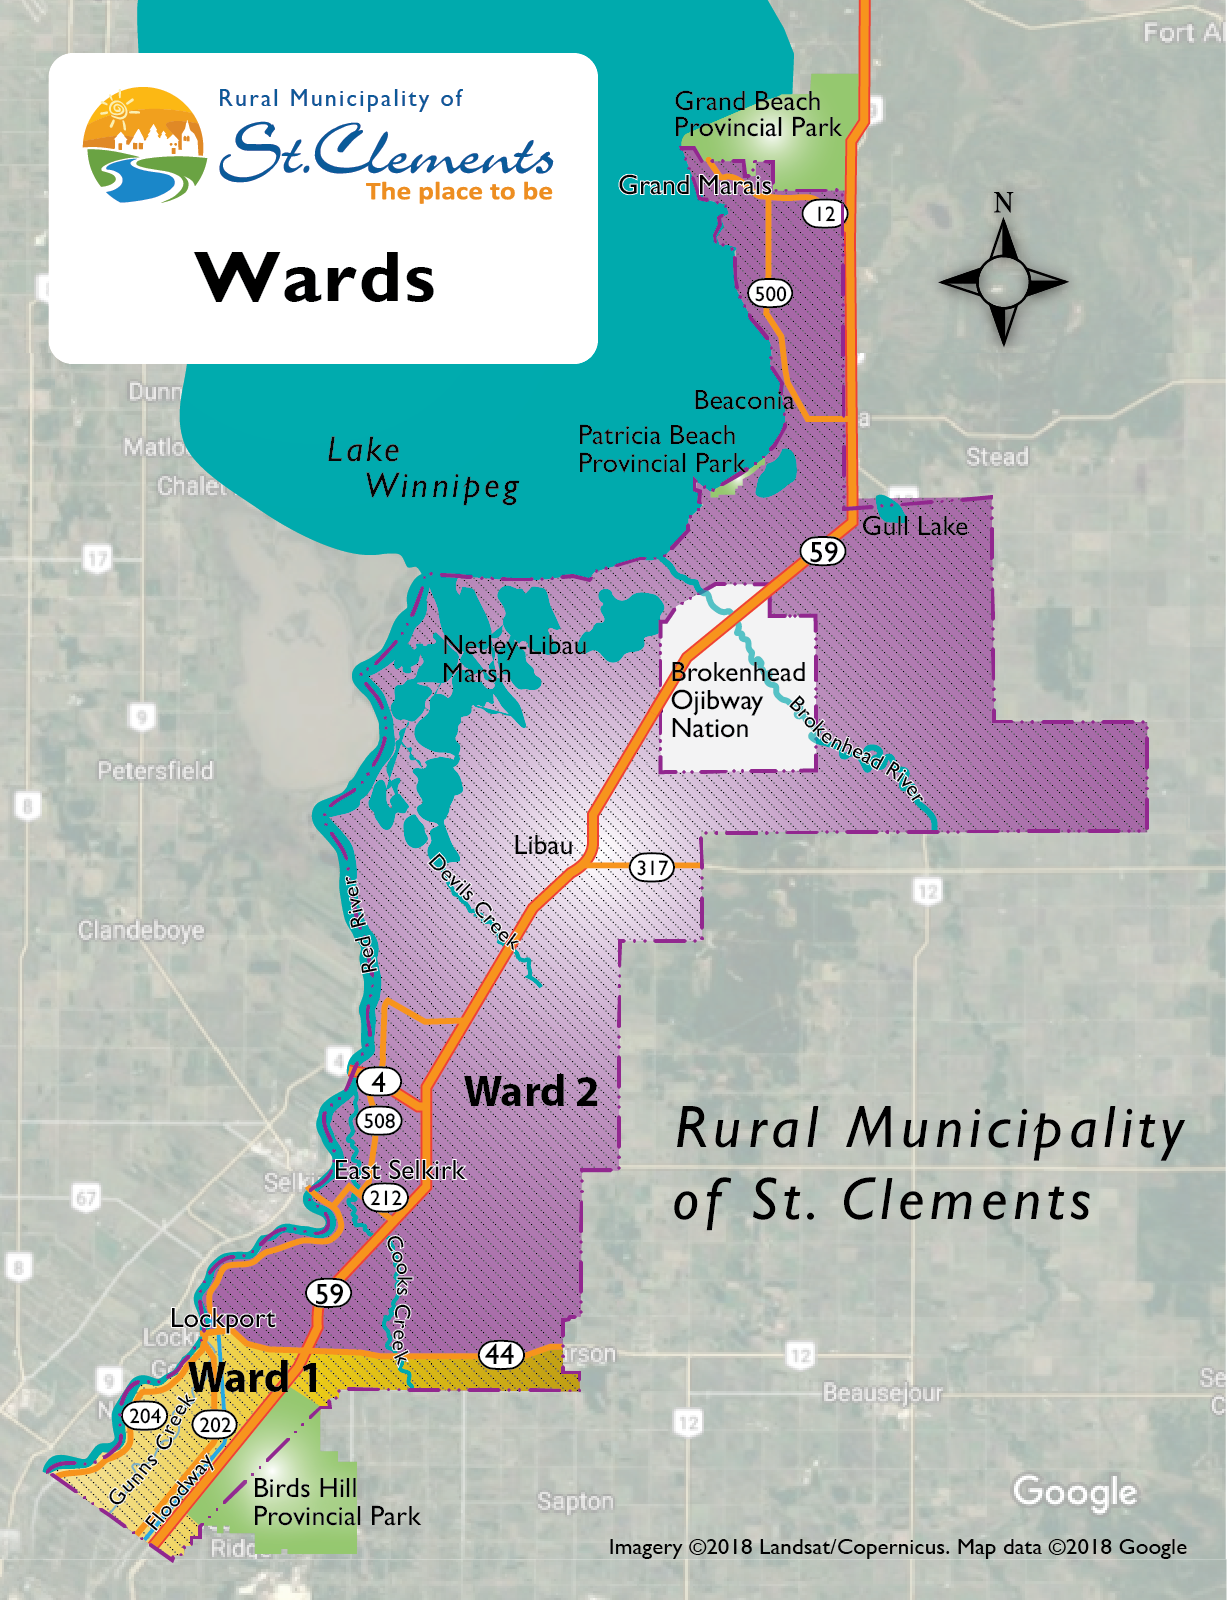 Ward Map RM of St Clements2x - Rural Municipality of St